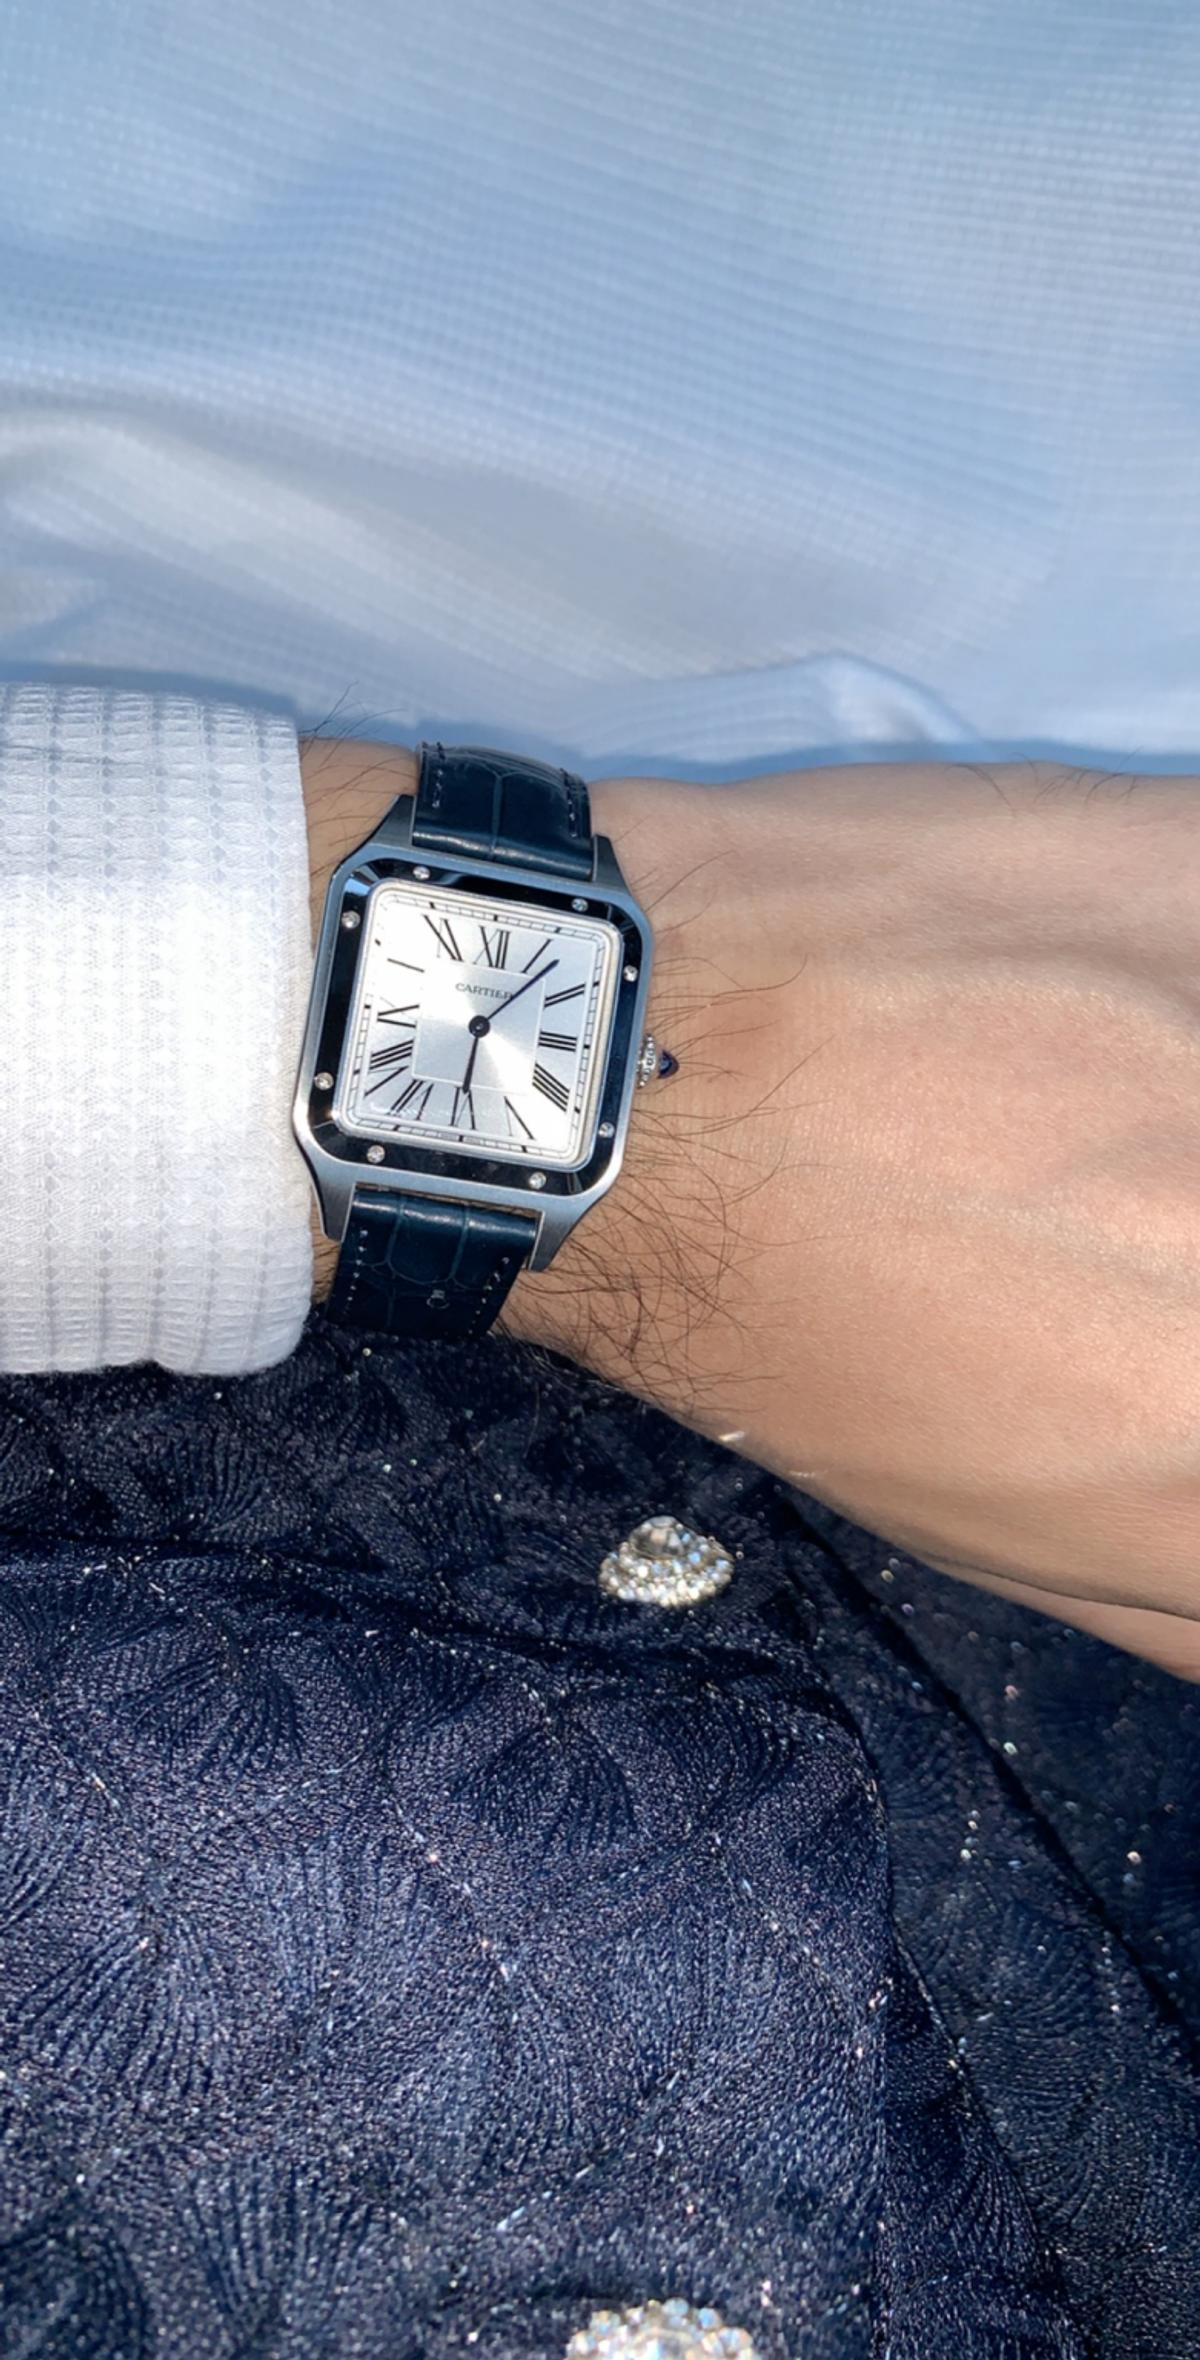 Bought 6 months ago. Only worn for 2 hours. Like brand new. Box and papers included. Cartier Warranty Card. Santos-Dumont watch, large model, quartz movement. Steel case, beaded crown set with a blue synthetic cabochon-shaped spinel, silvered satin-brushed dial with sunray effect, Roman numerals, blued-steel sword-shaped hands, sapphire crystal, navy blue alligator-skin strap, steel ardillon buckle. Case dimensions: 43.5 mm x 31.4 mm, thickness: 7.3 mm. Water-resistant to 3 bar approx. 30 metres